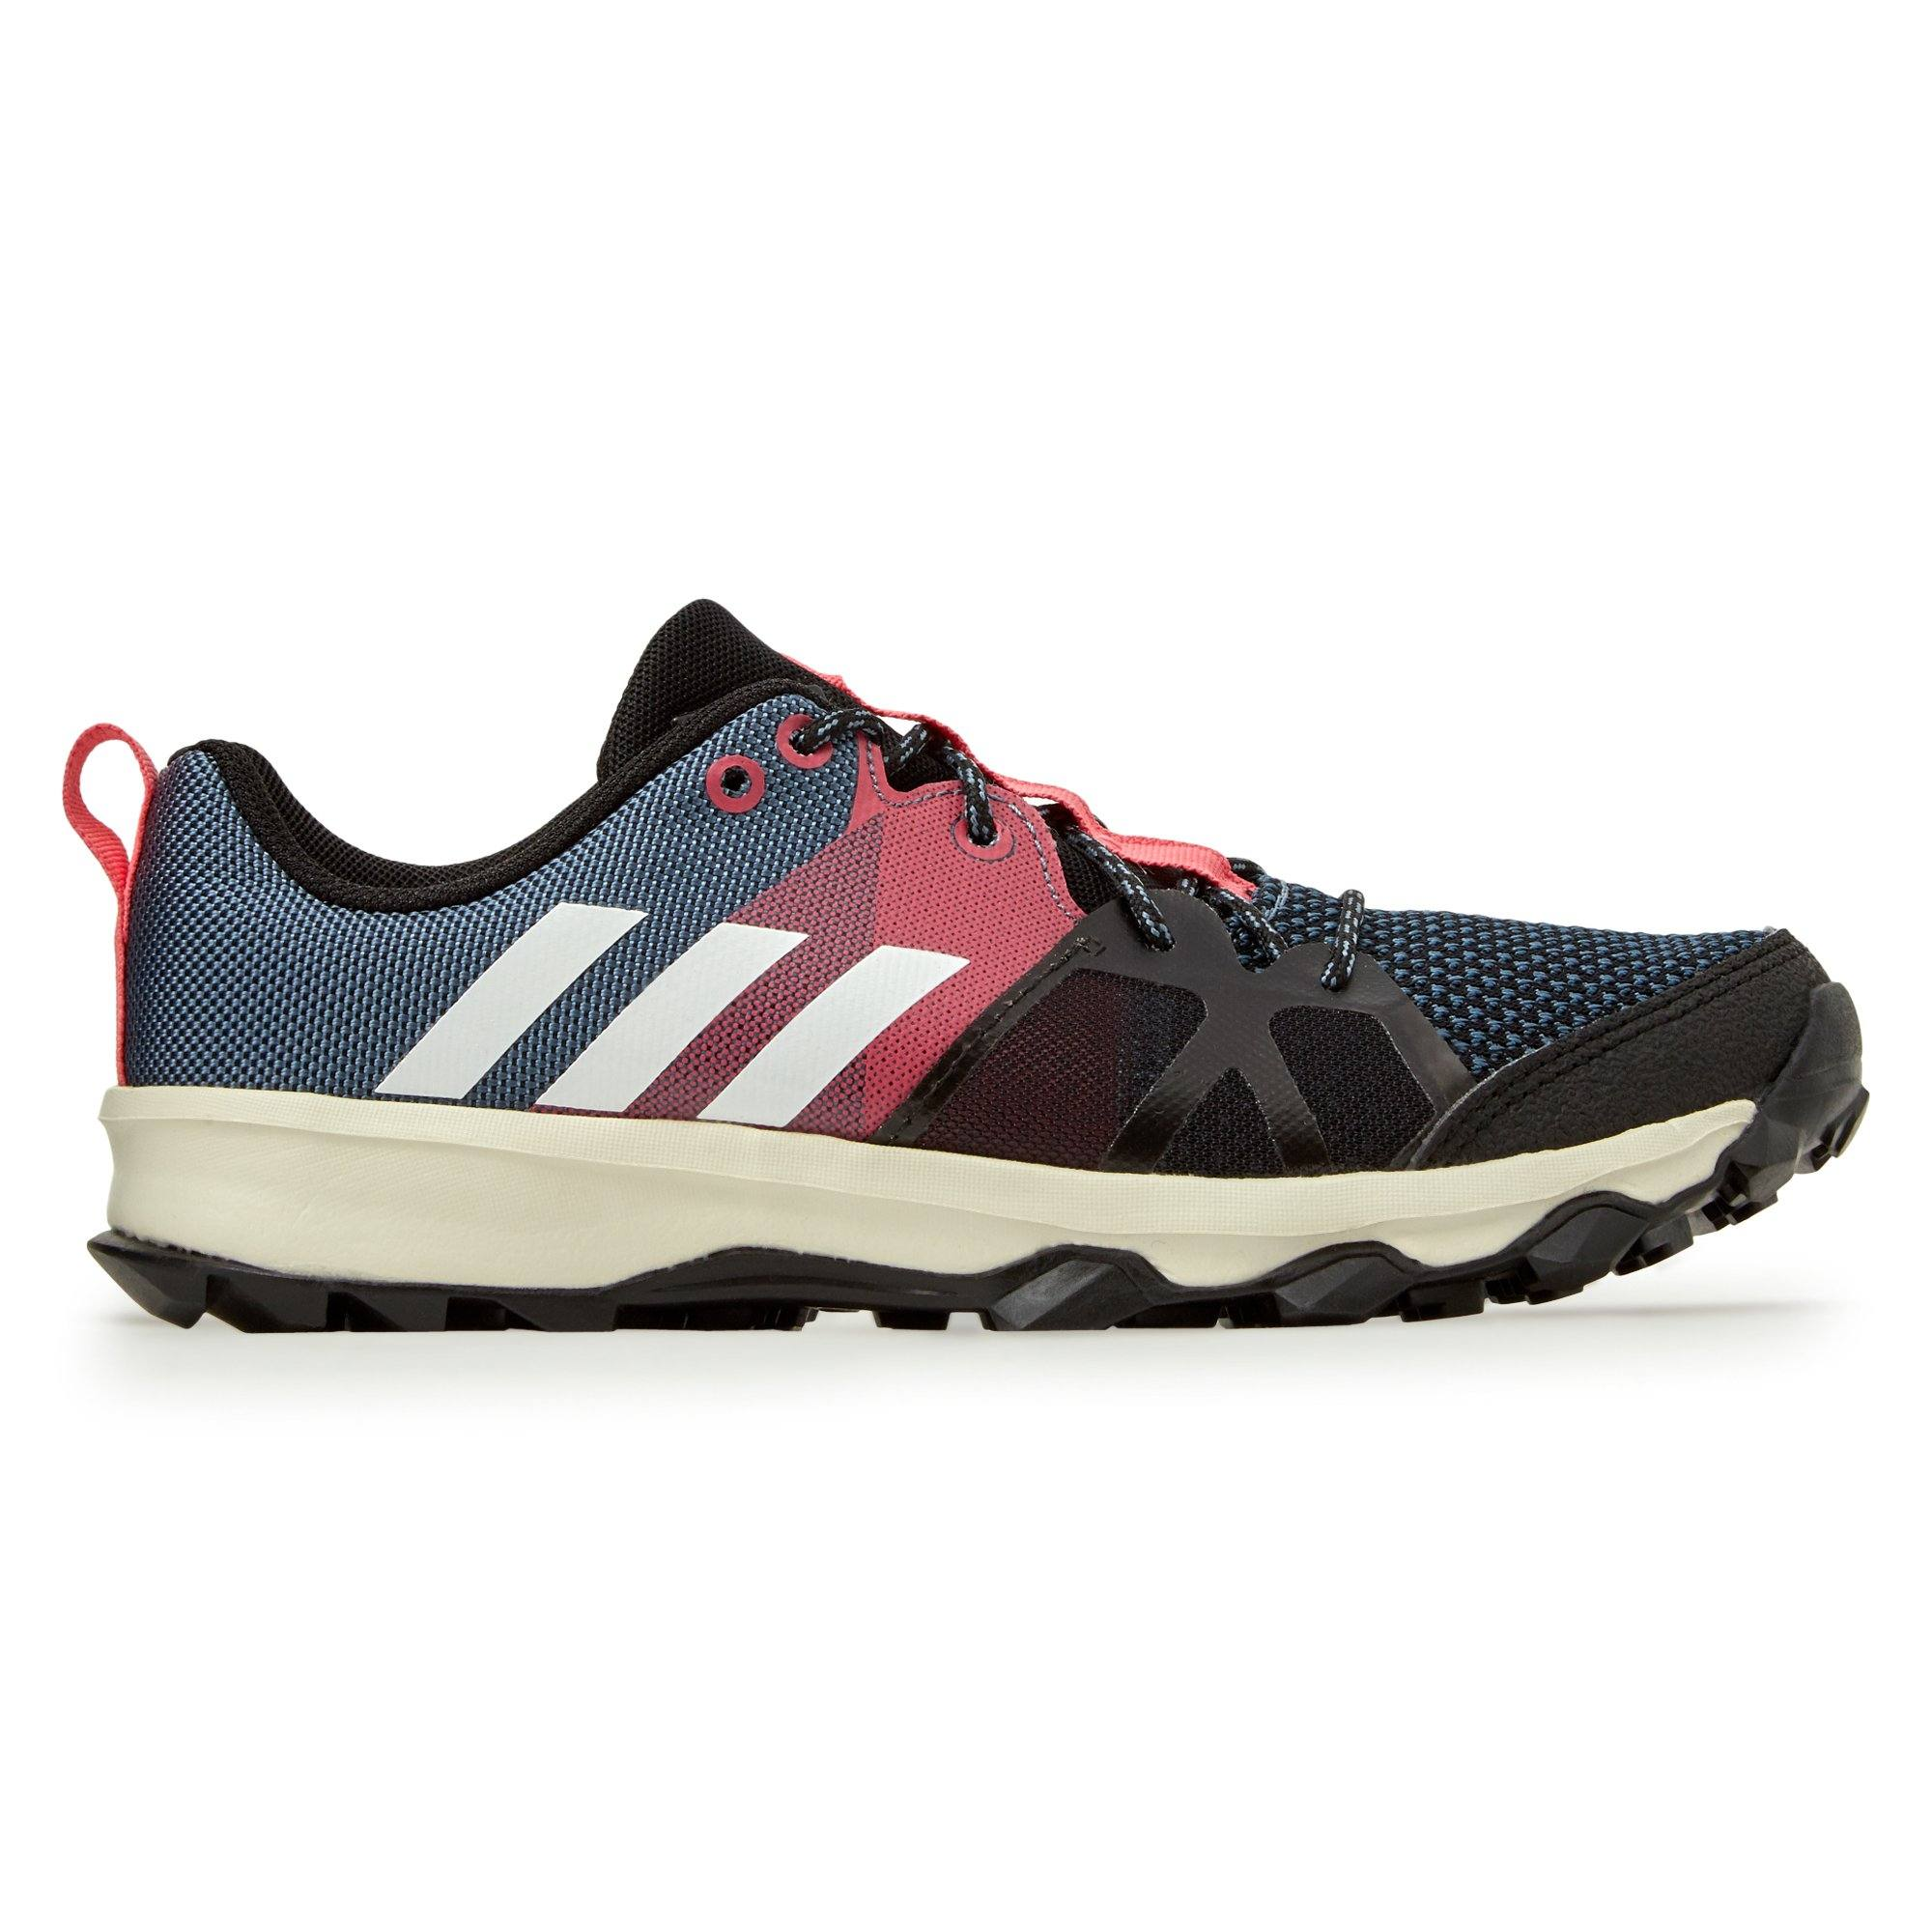 Adidas Kid's Kanadia 8.1 Shoes - Raw Steel/Off White/Real Pink Footwear Adidas  (2012422176827)